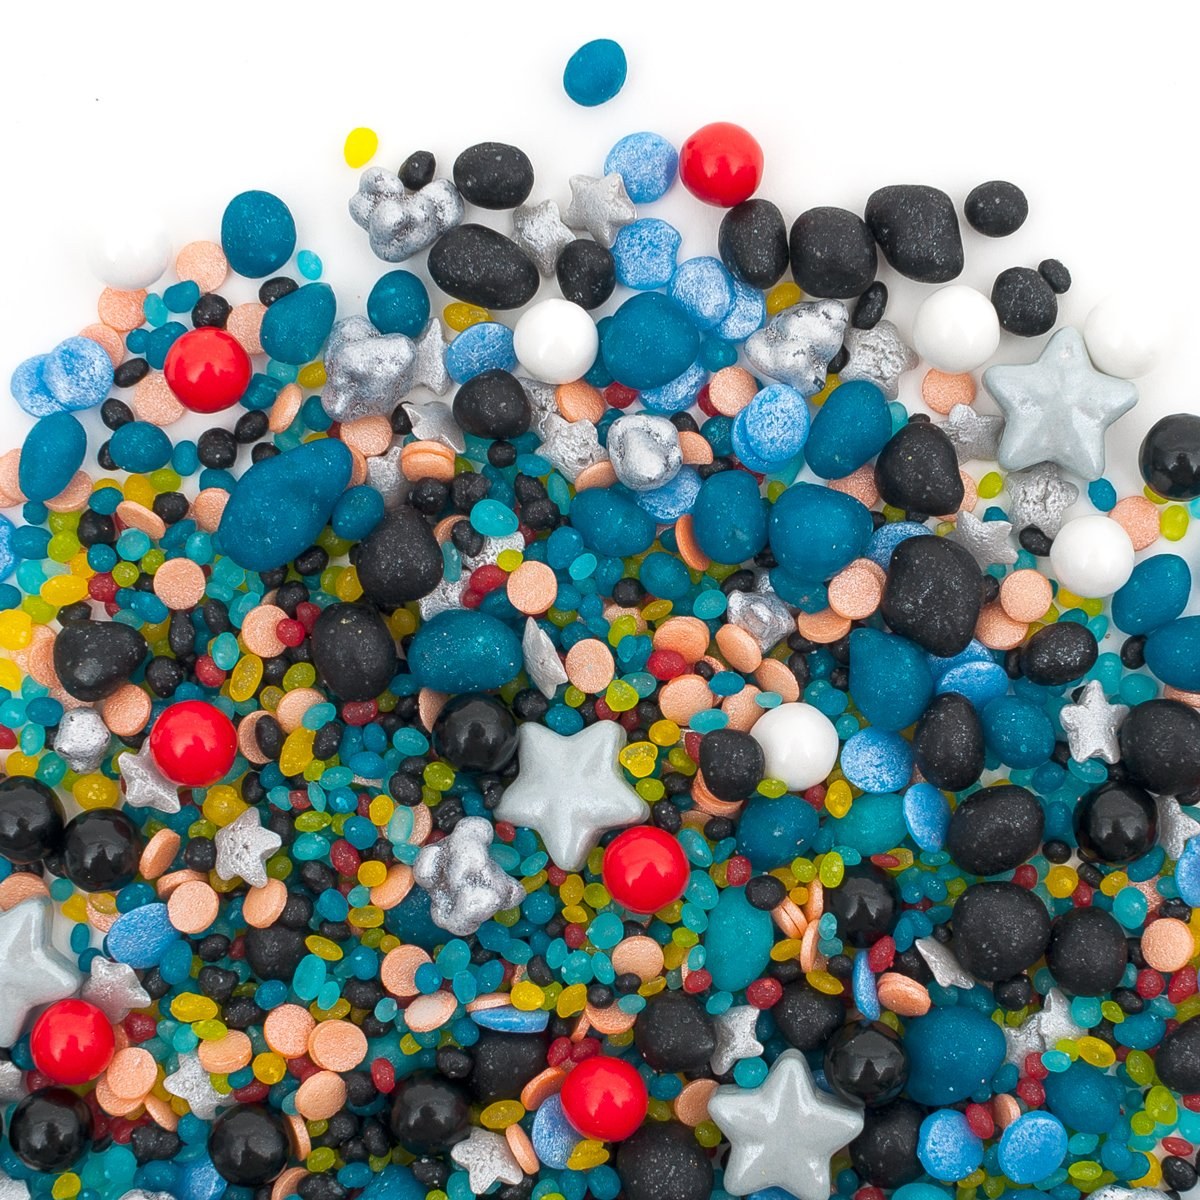 Save 20% at Checkout!   Candy Sprinkles   Outer Space Candyfetti   8oz Jar   Black Blue Red Gold and White   Stars and Asteroids   MADE IN THE USA!